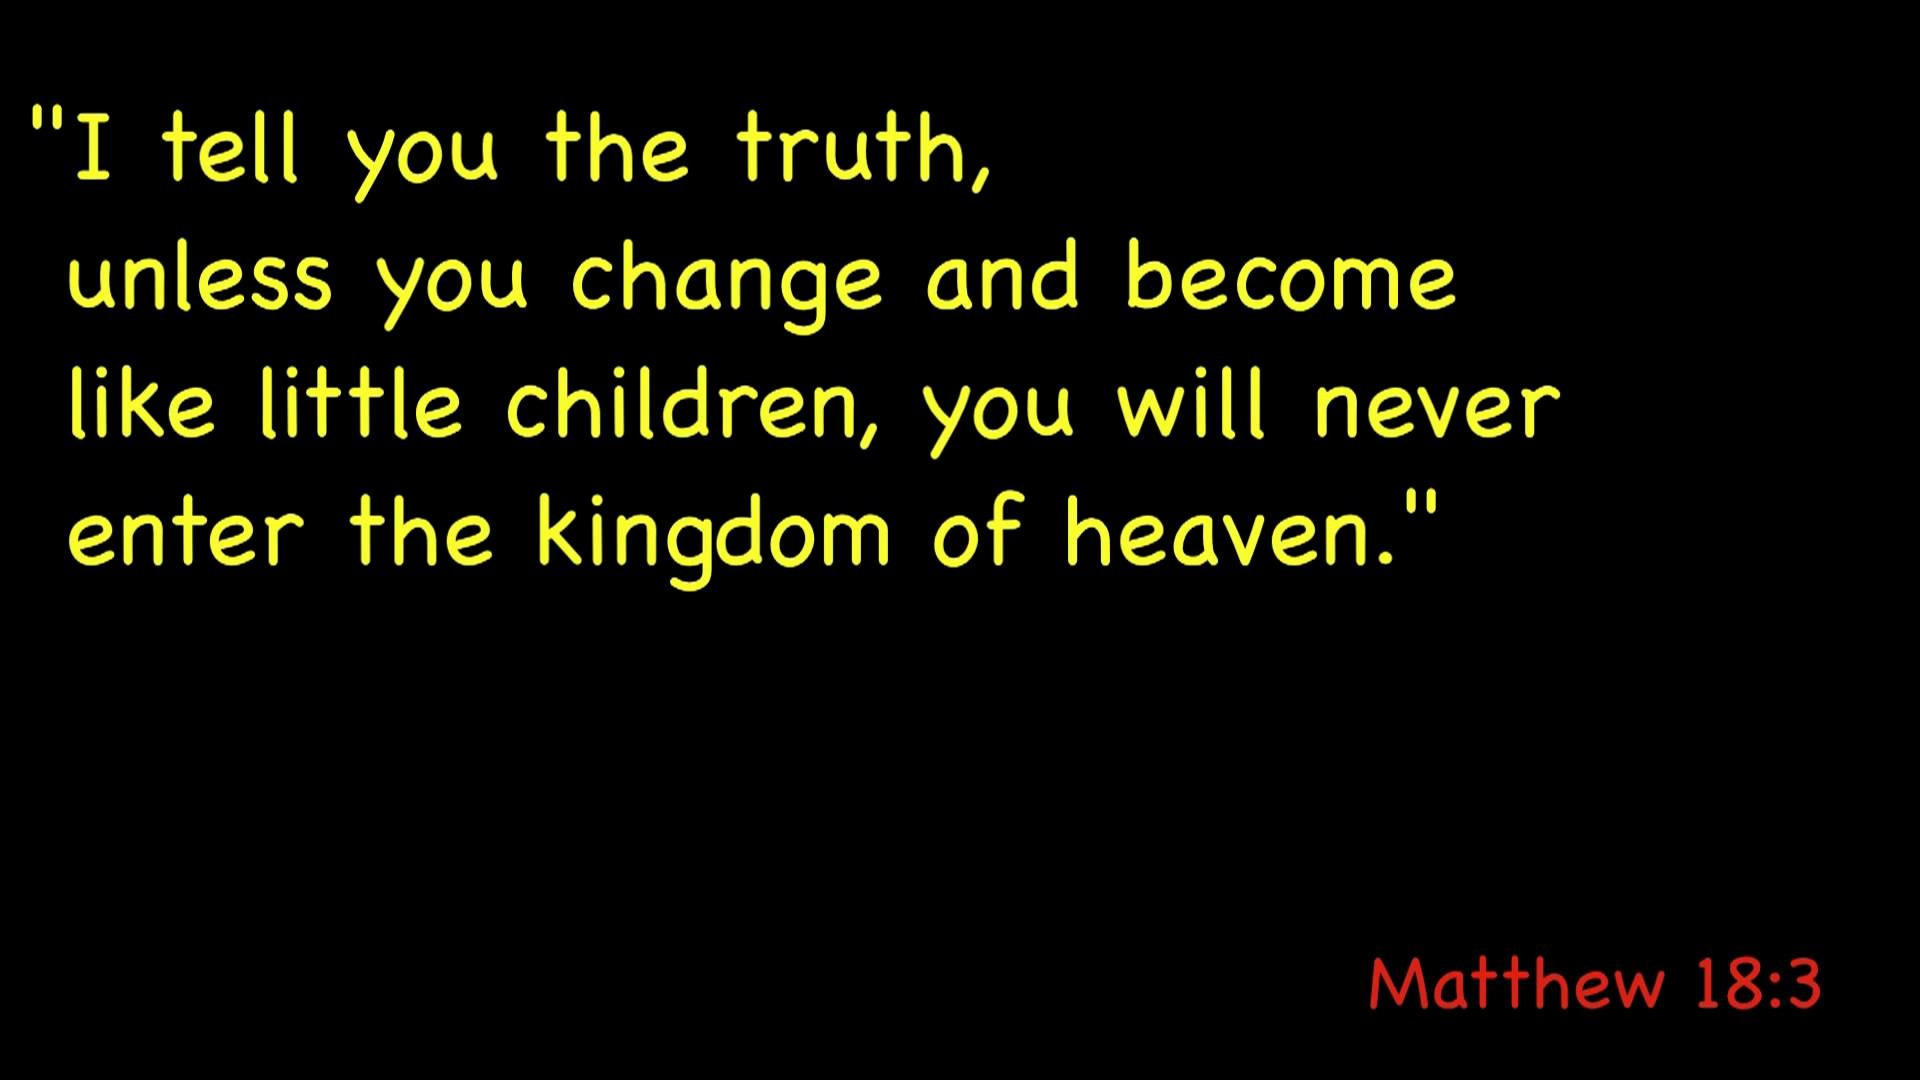 Kingdom Of Heaven Quotes What Is The Kingdom Of Heaven Jesus Quotes Sayings  Wallpaper Hd